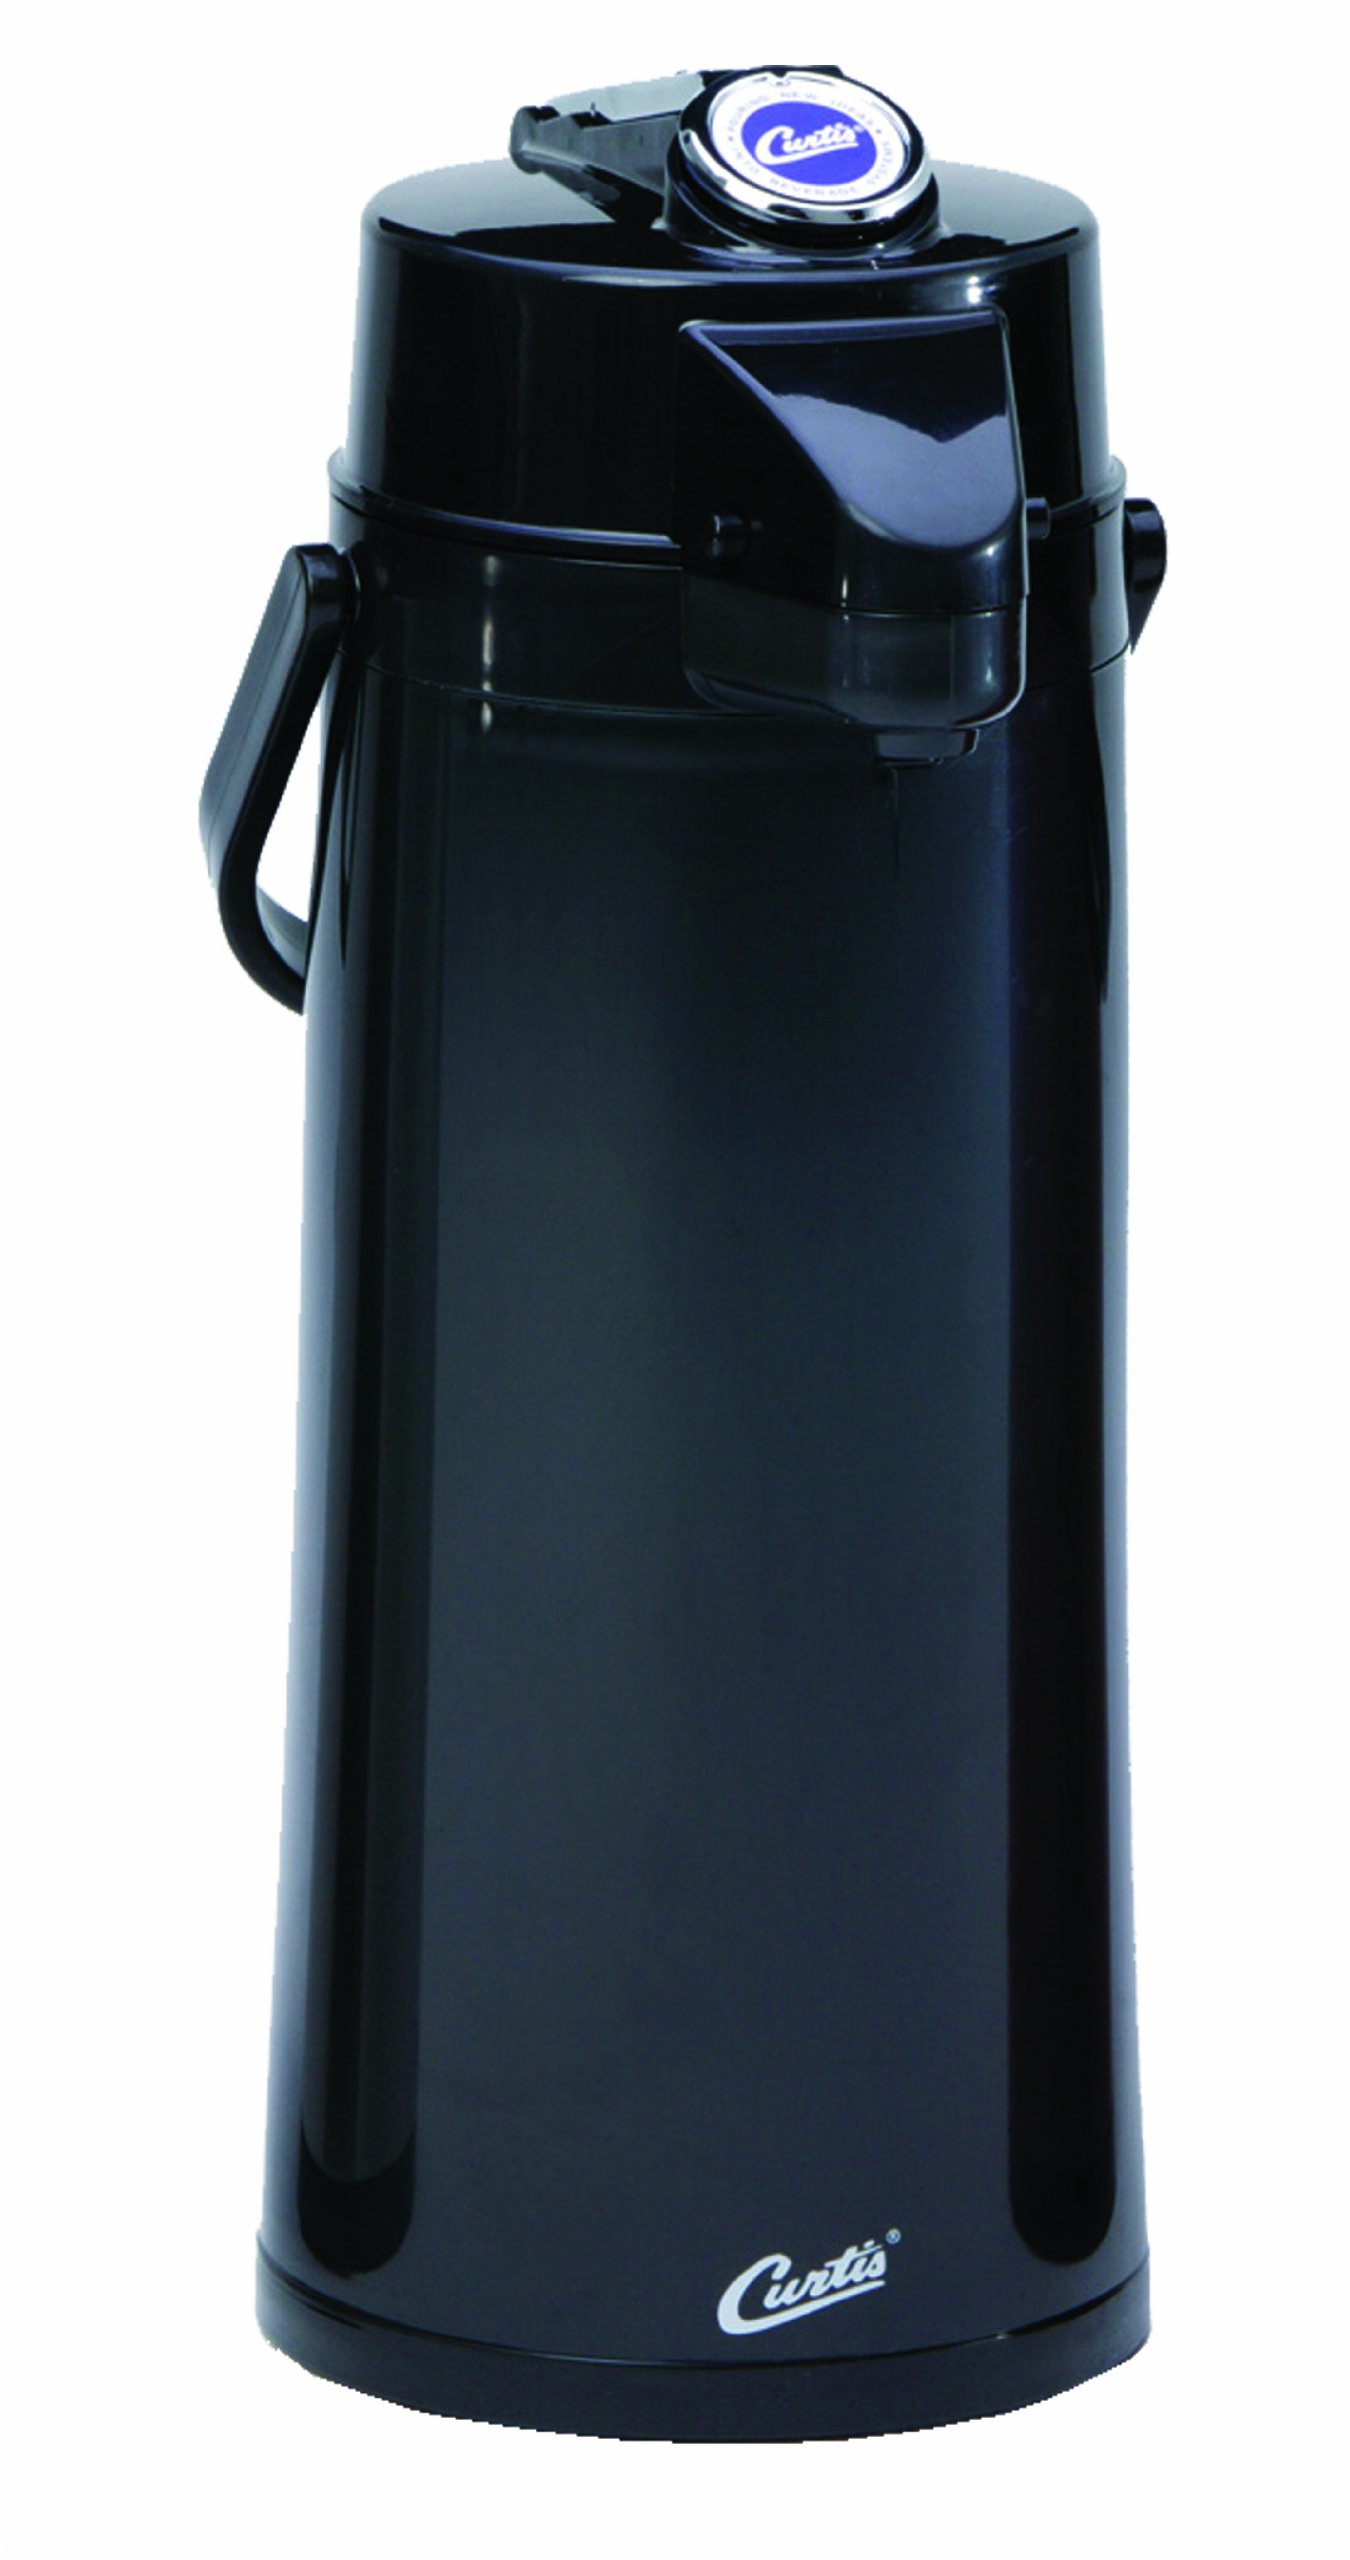 Wilbur Curtis Thermal Dispenser Air Pot, 2.2L Black Body Glass Liner Lever Pump - Commercial Airpot Pourpot Beverage Dispenser - TLXA2203G000 (Each) by Wilbur Curtis